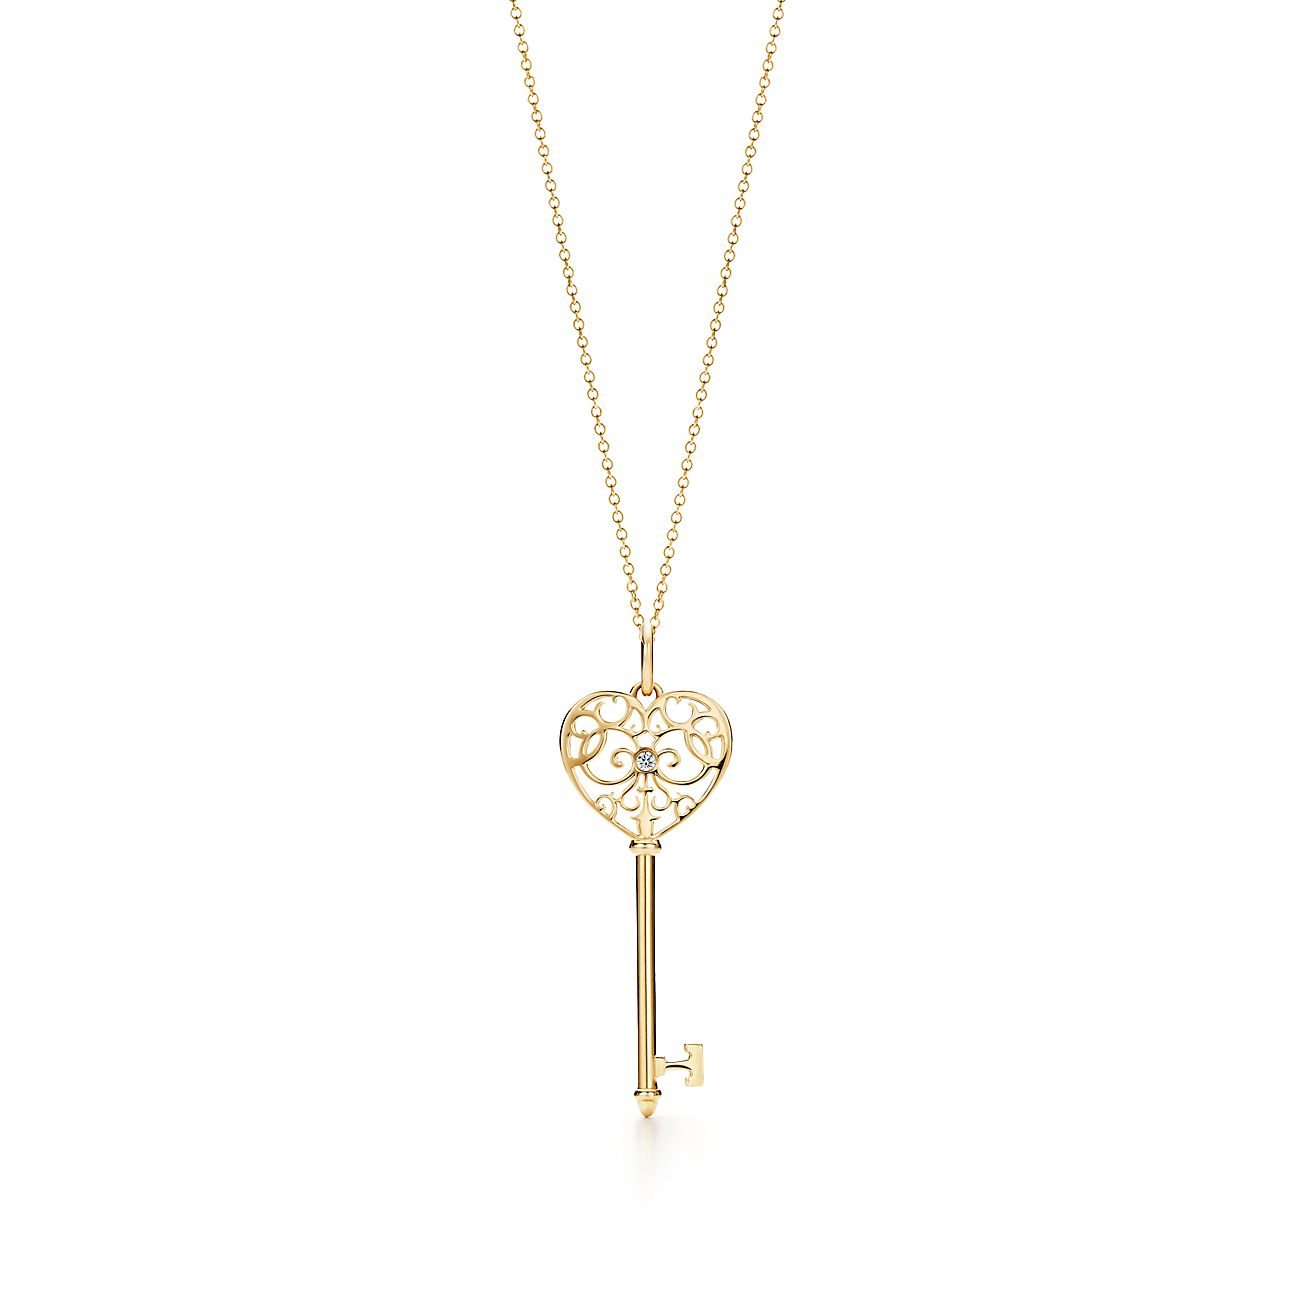 Tiffany enchant heart key pendant in 18k gold with diamonds tiffany enchant heart key pendant in 18k gold with diamonds tiffany co aloadofball Image collections